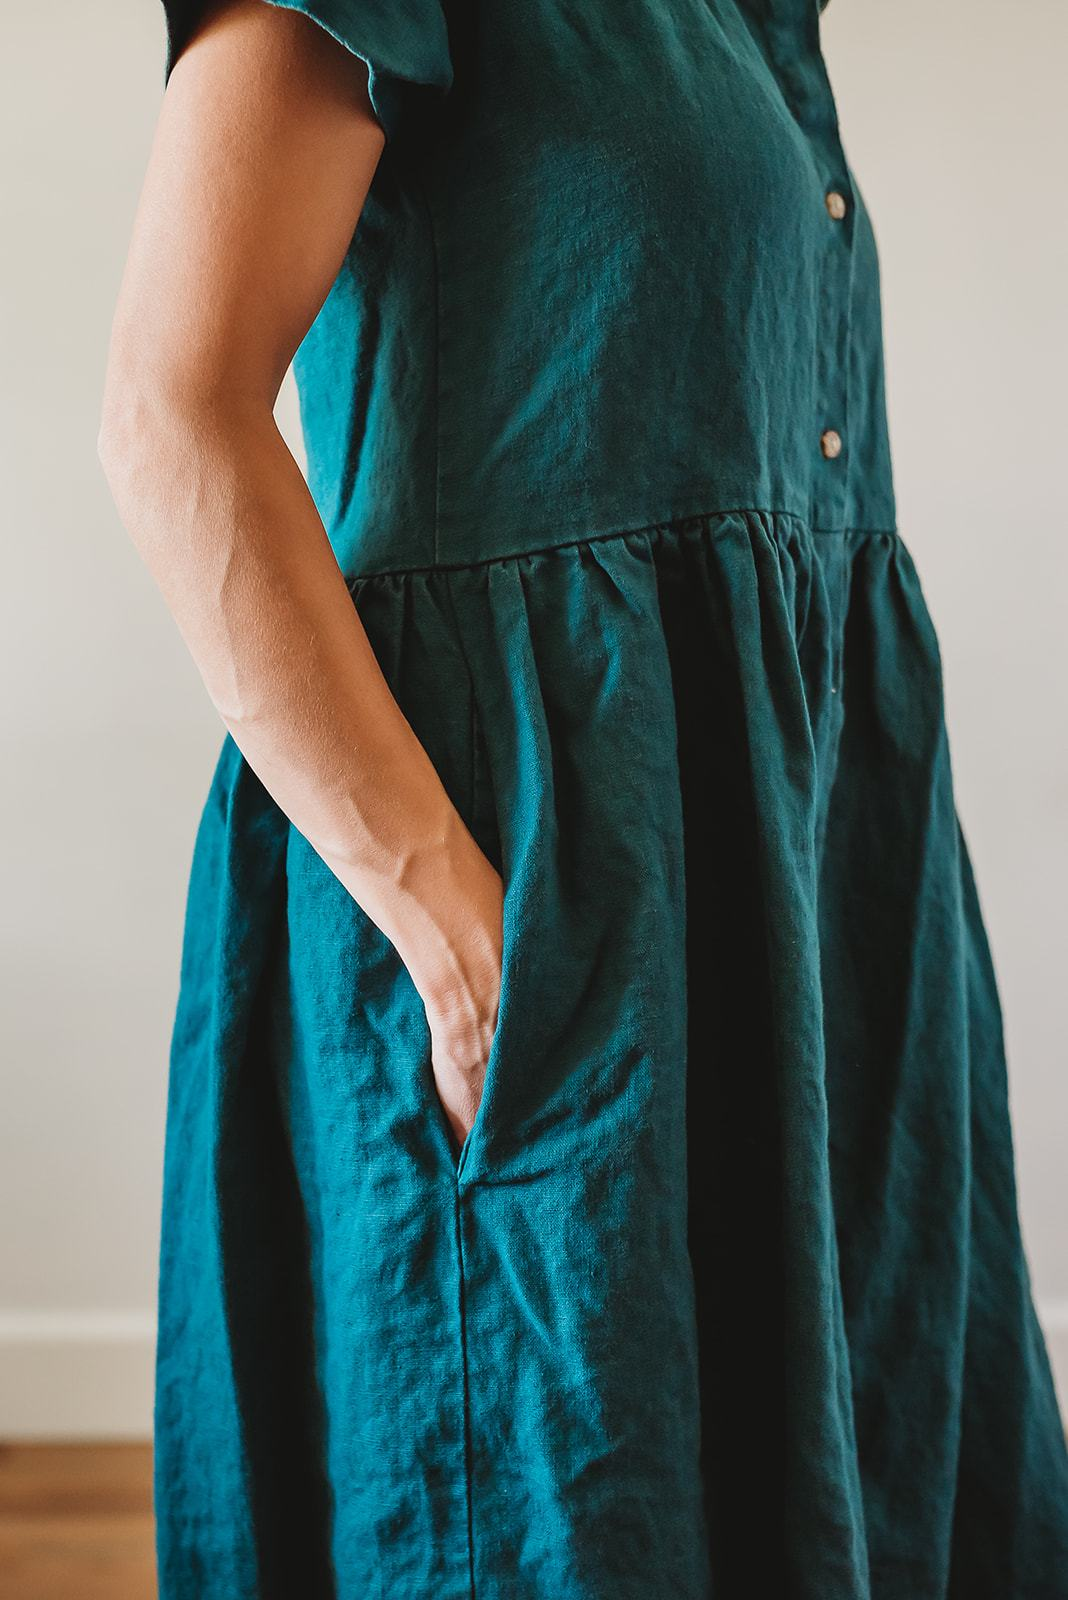 a modelled teal linen dress shown from the side view, hand in pocket